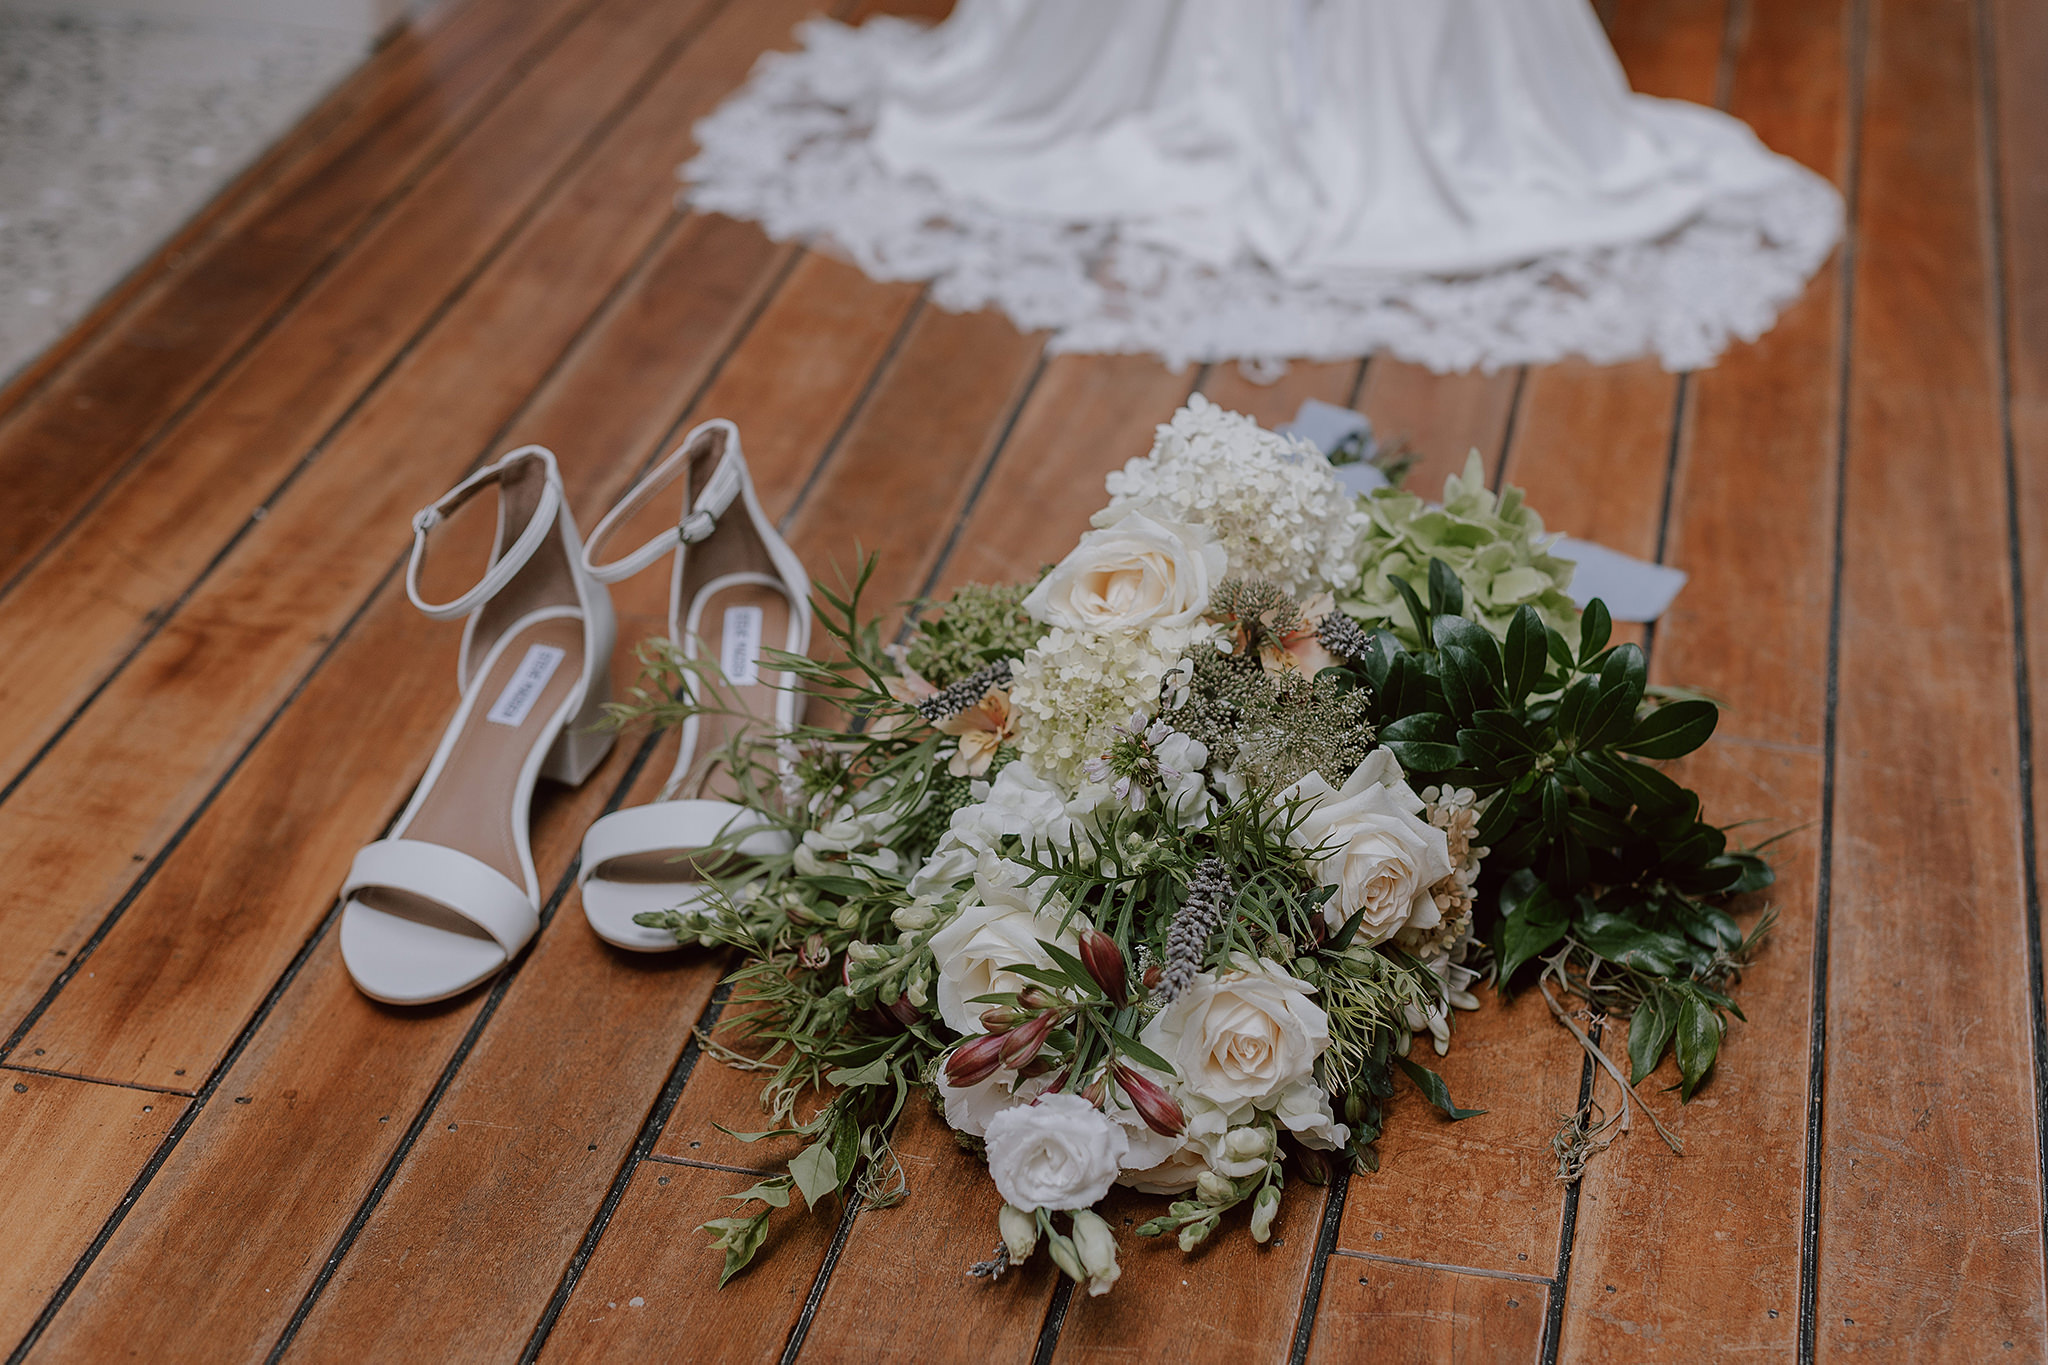 kelly-logan-whangapoua-wedding-jackson-bright20190212_0022.jpg